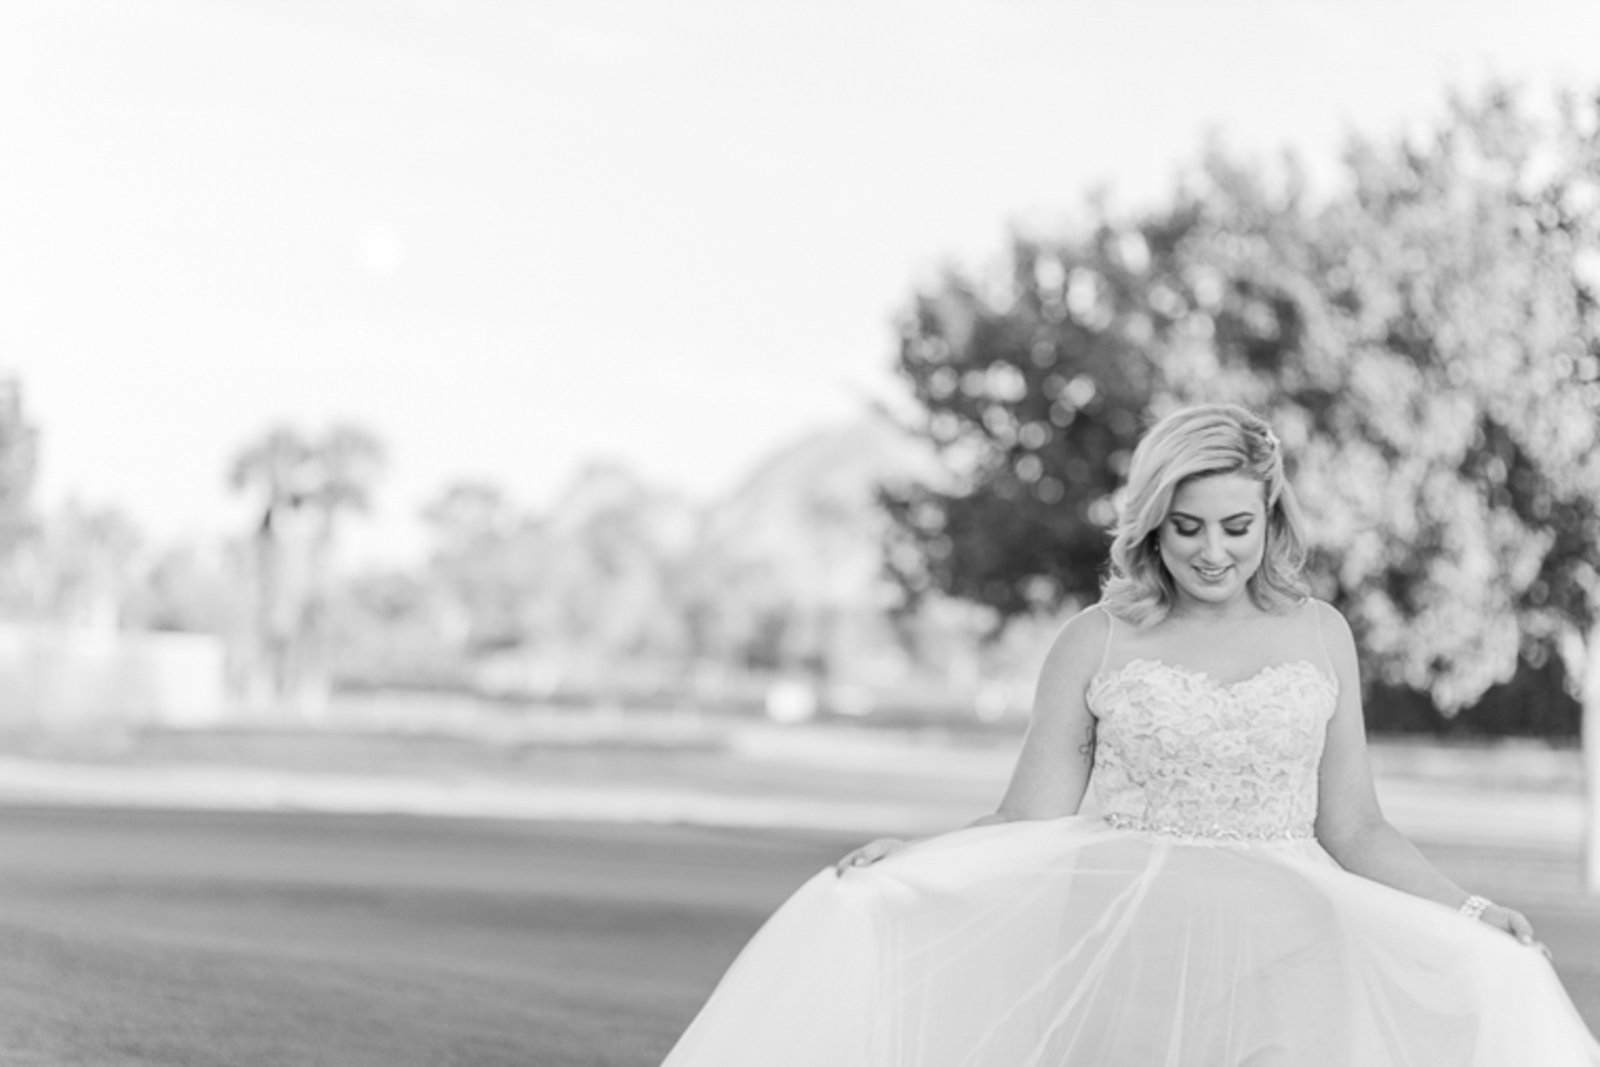 Bridal portrait taken by C. elyse photos at destination Phoenix, AZ wedding